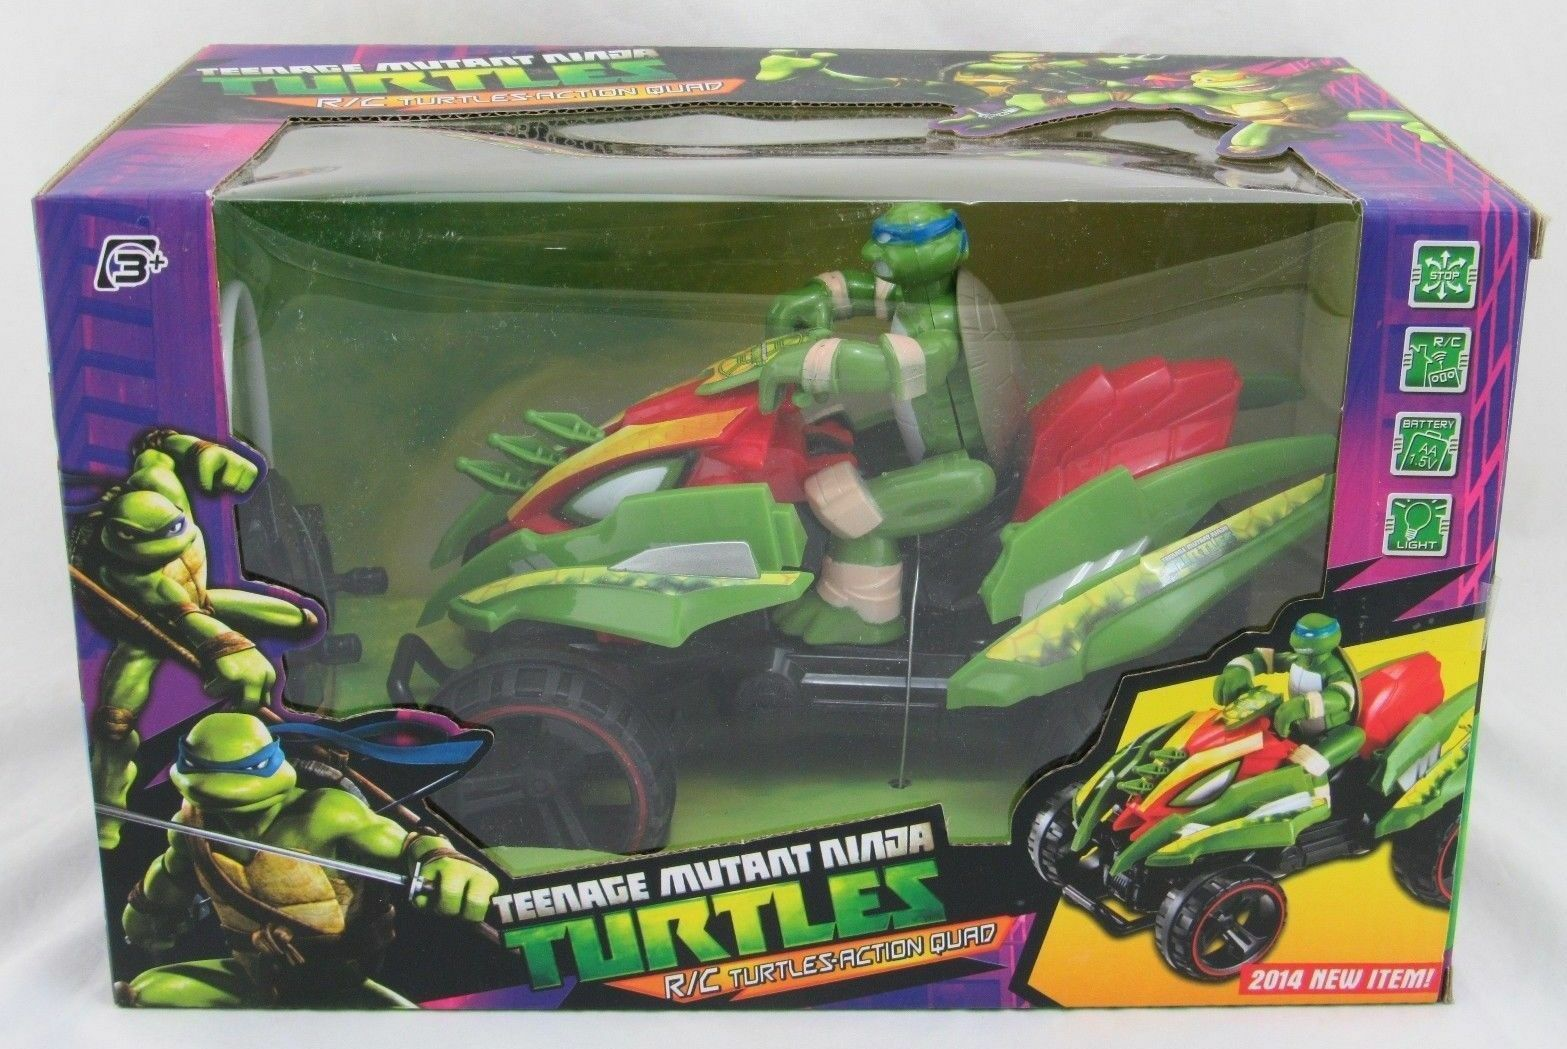 Teenage Mutant Ninja Turtles RC Turtles Action Quad, New in Box